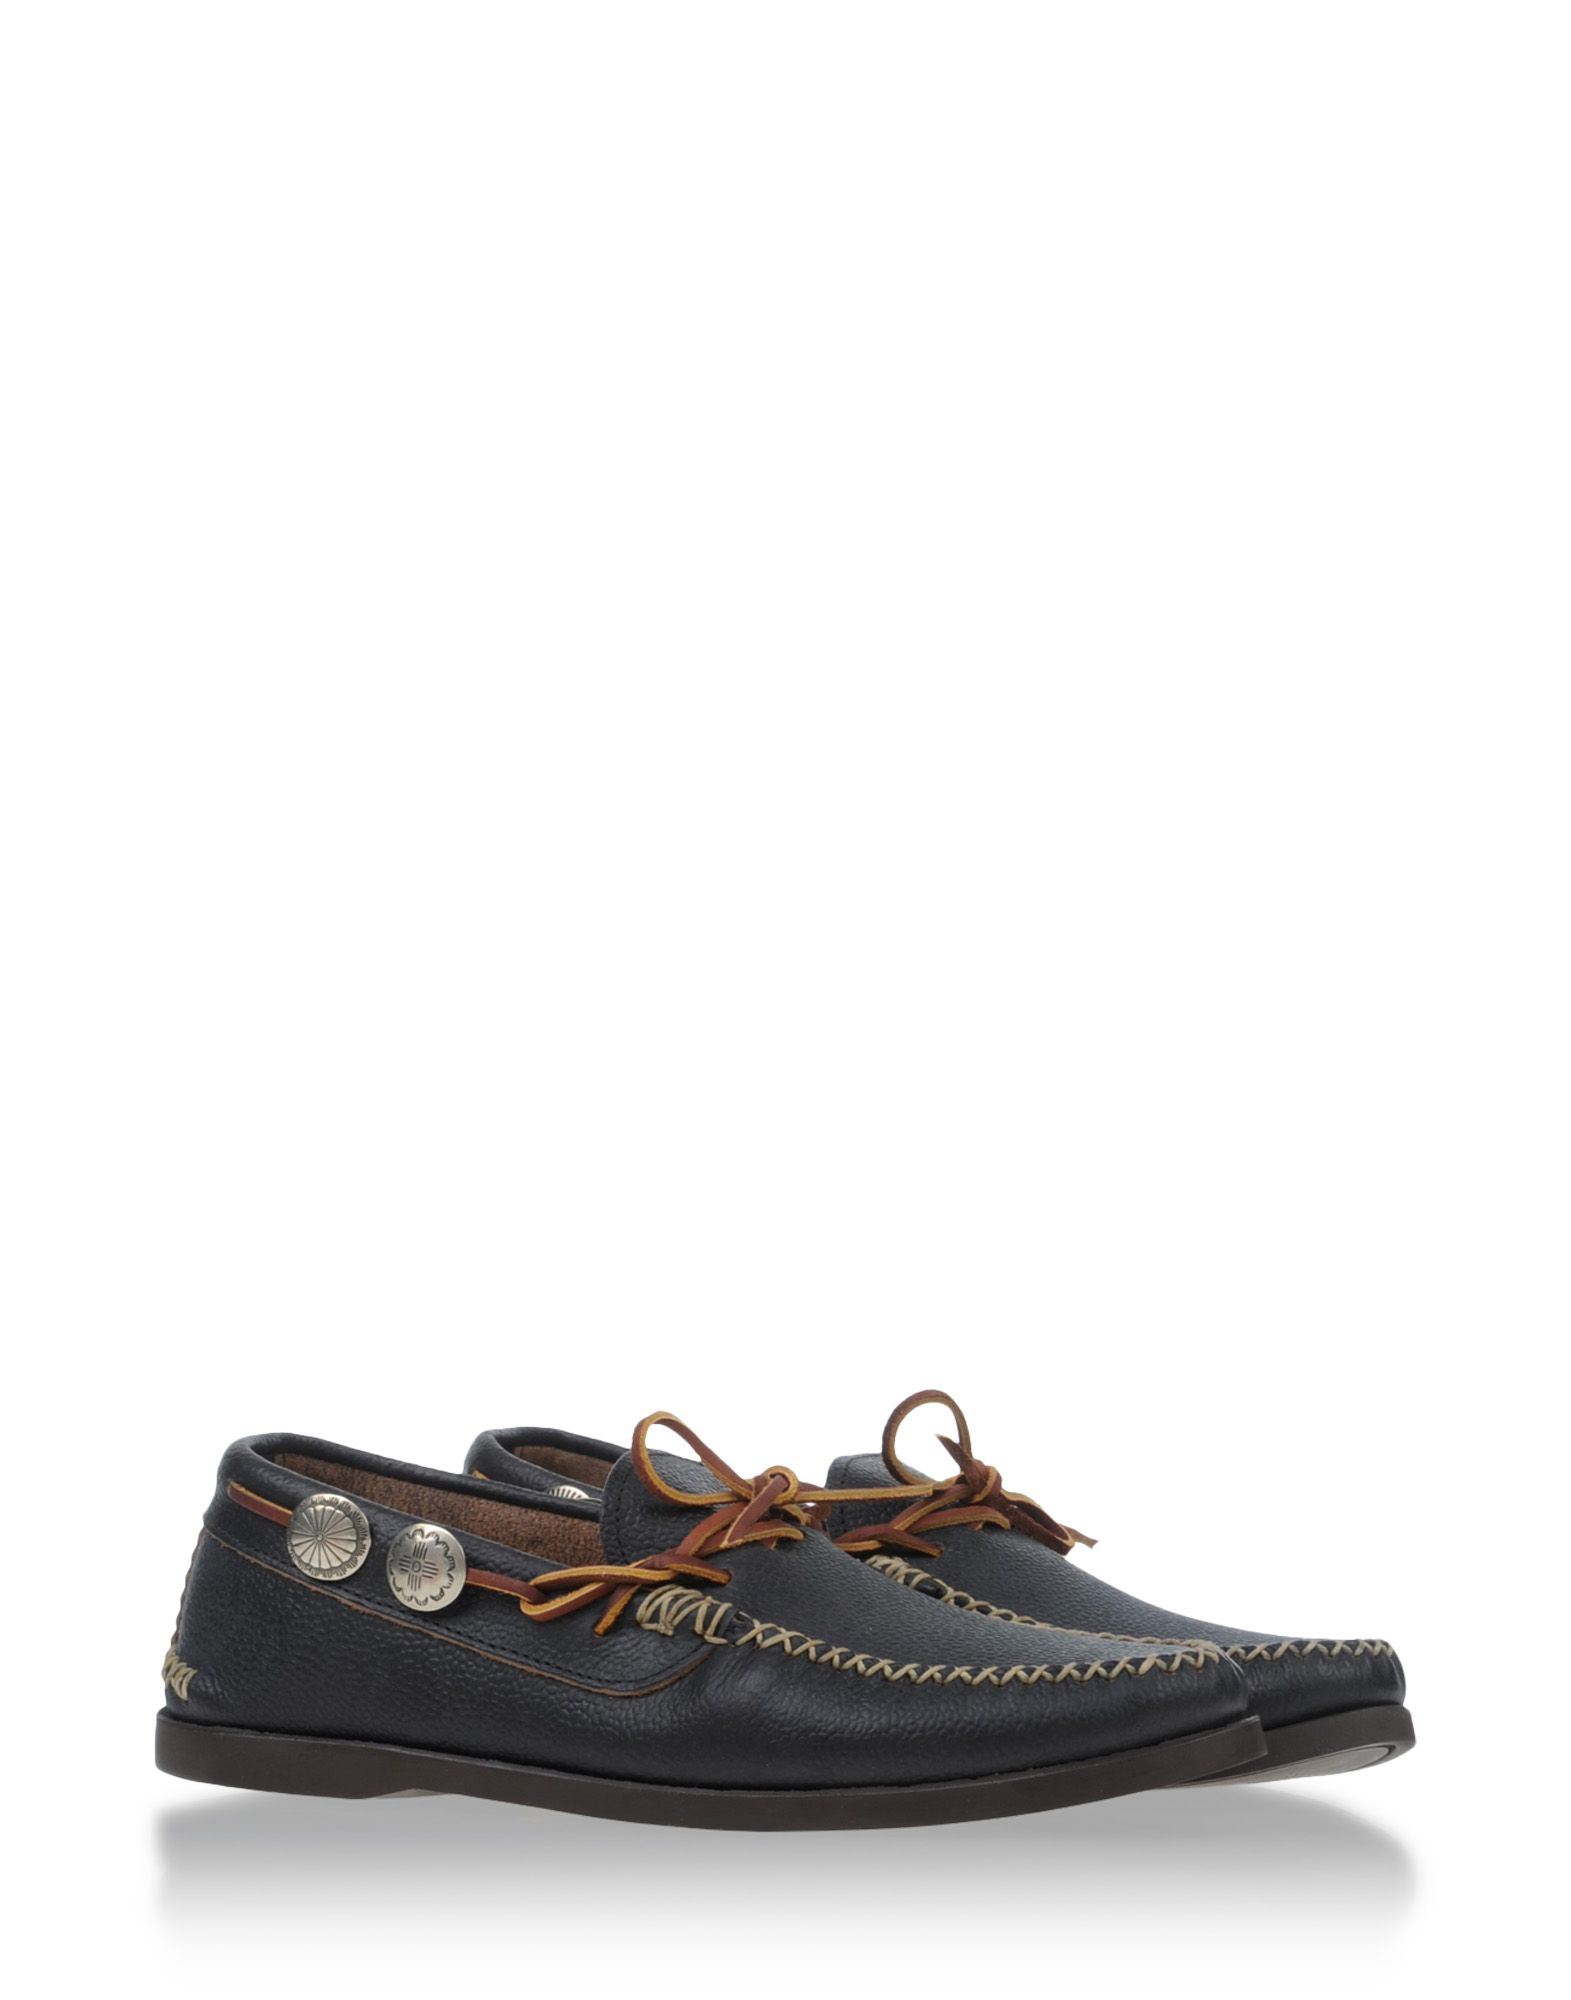 Yuketen Leather Moccasin Loafers in Black for Men